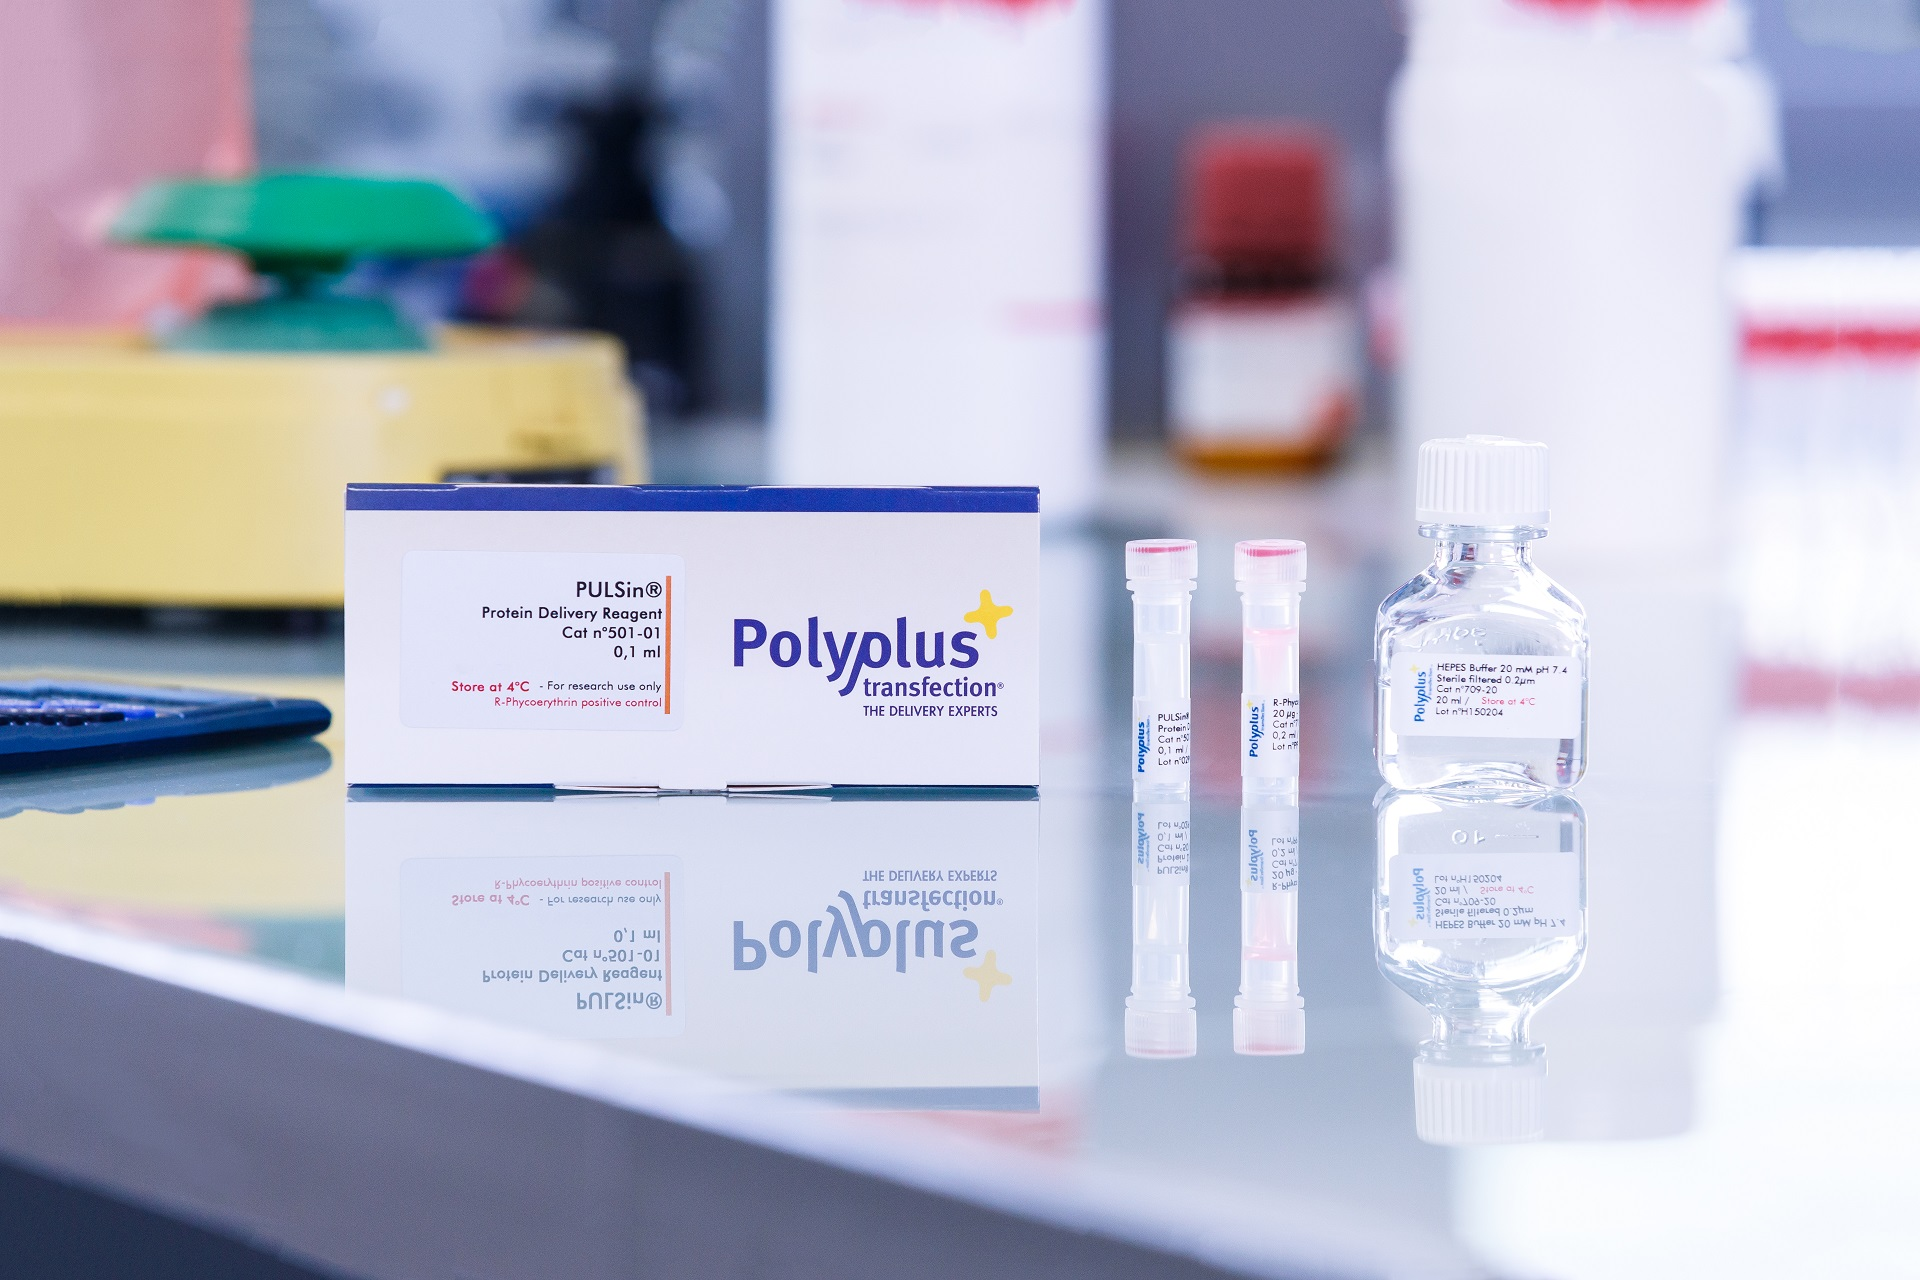 PULSin packaging - Polyplus-transfection